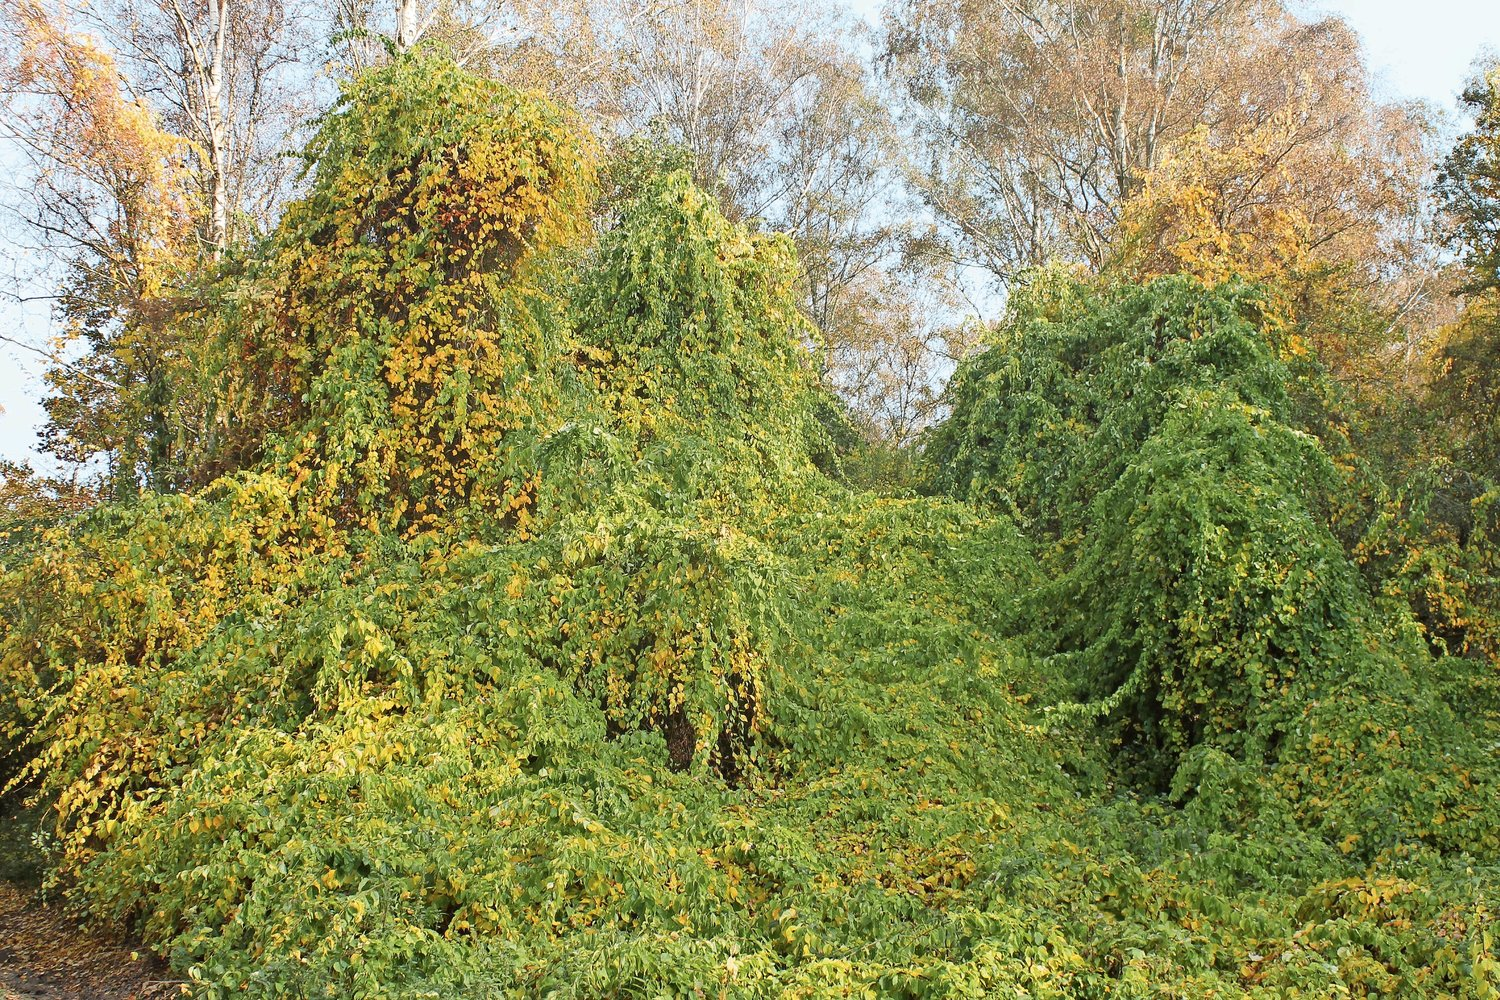 A blanket of oriental bittersweet vines cover overgrowing trees. It's ones of many plant invasives that can wreak havoc in our natural environment.